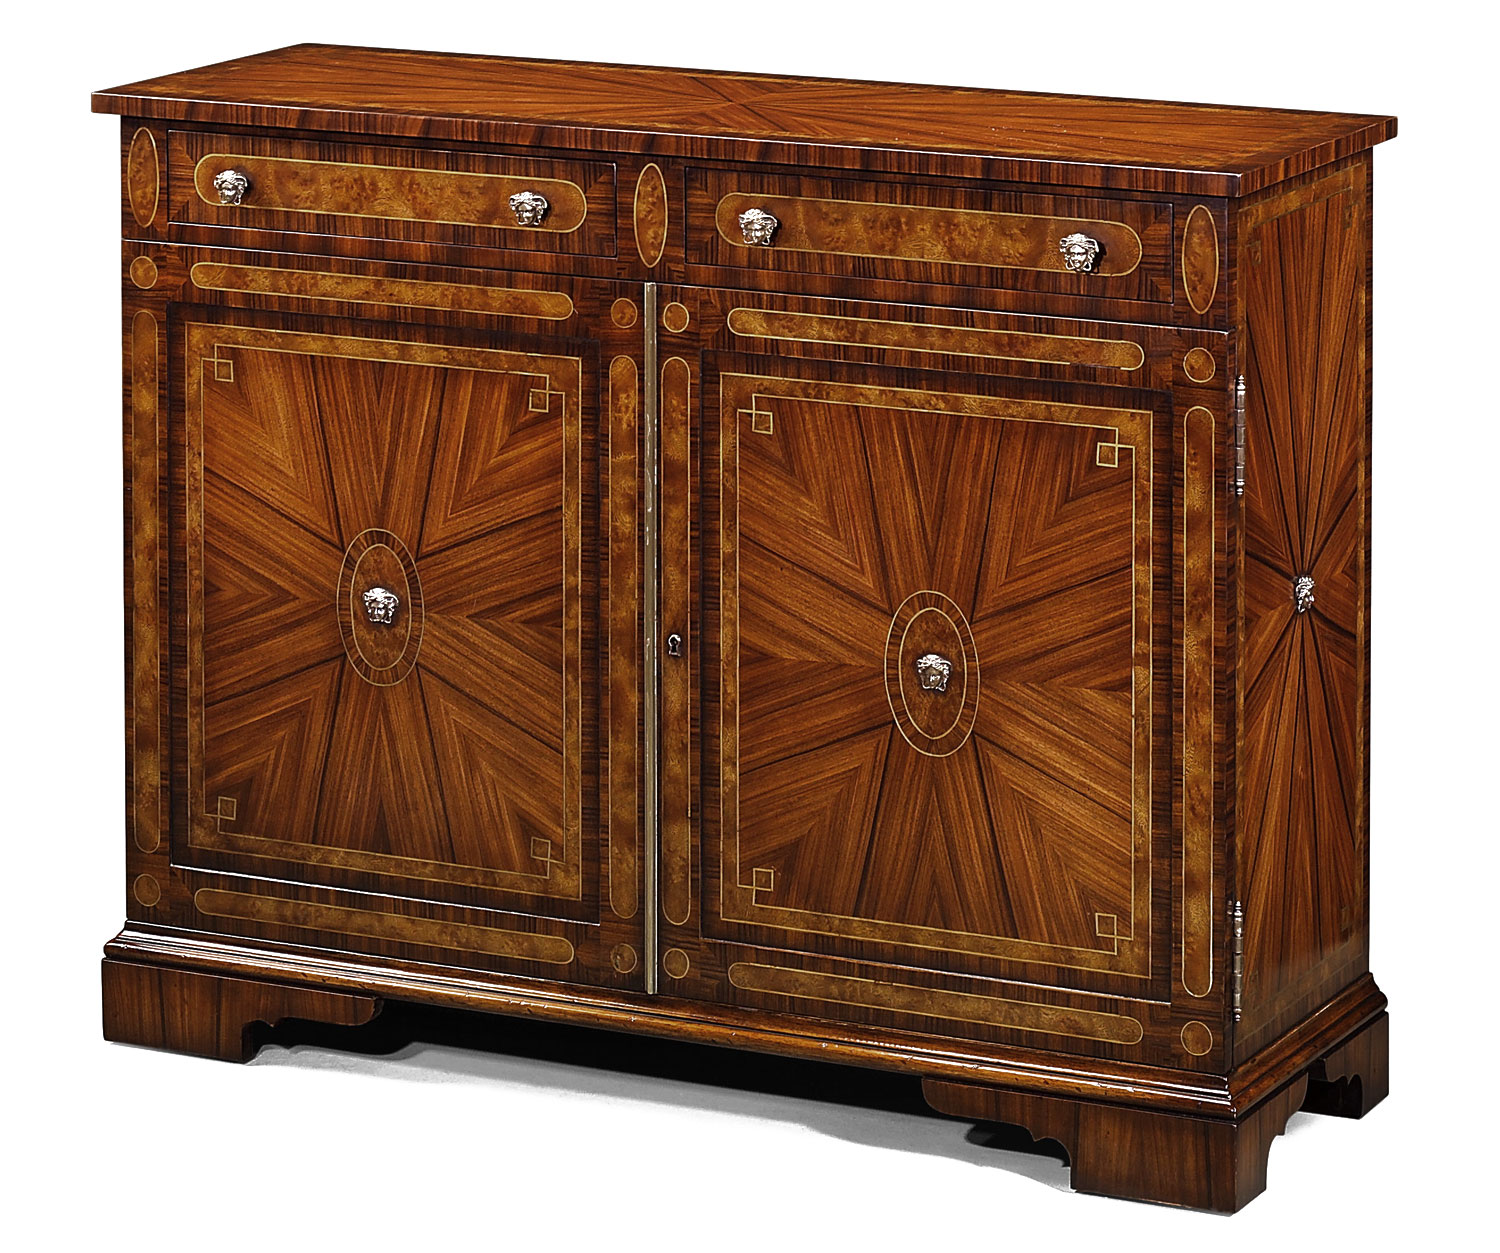 Regency style rosewood inlaid side cabinet